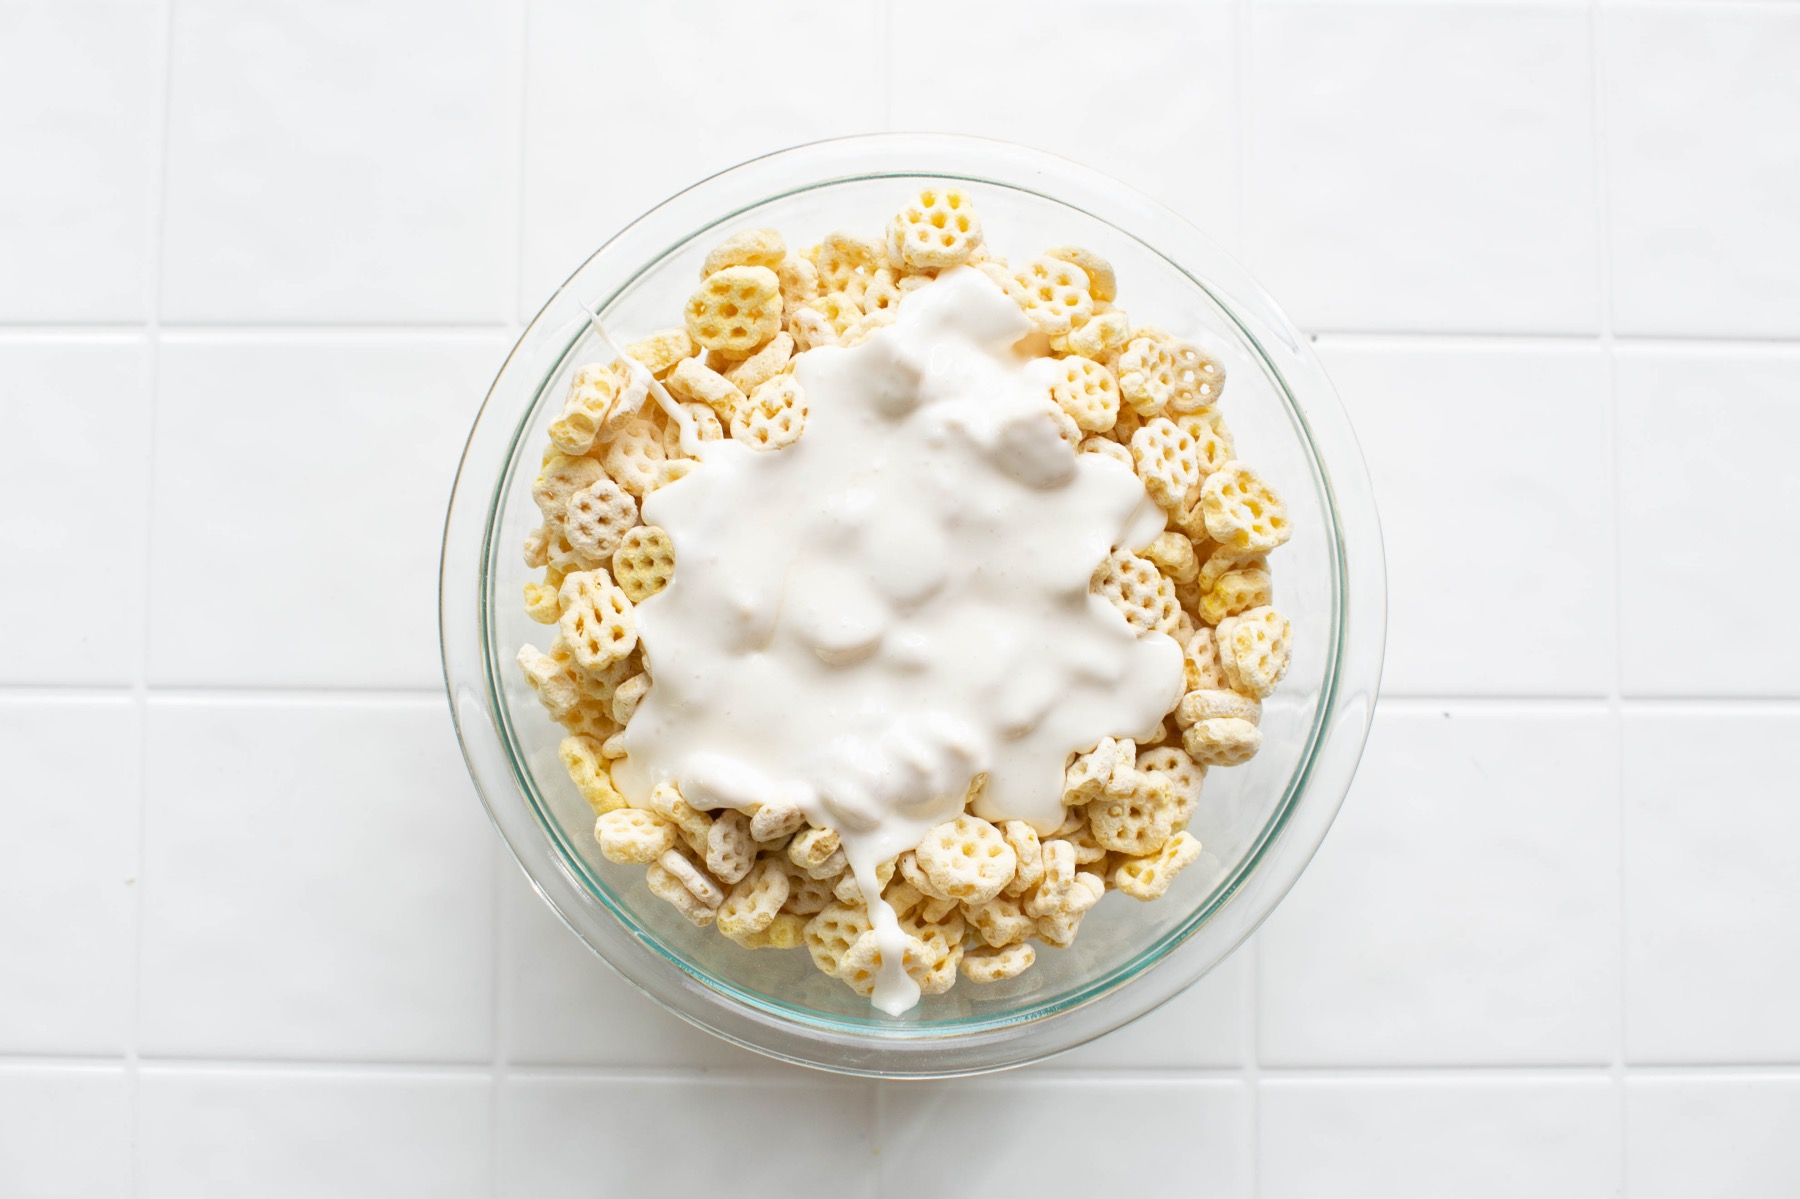 mix together the marshmallows and honeycomb cereal